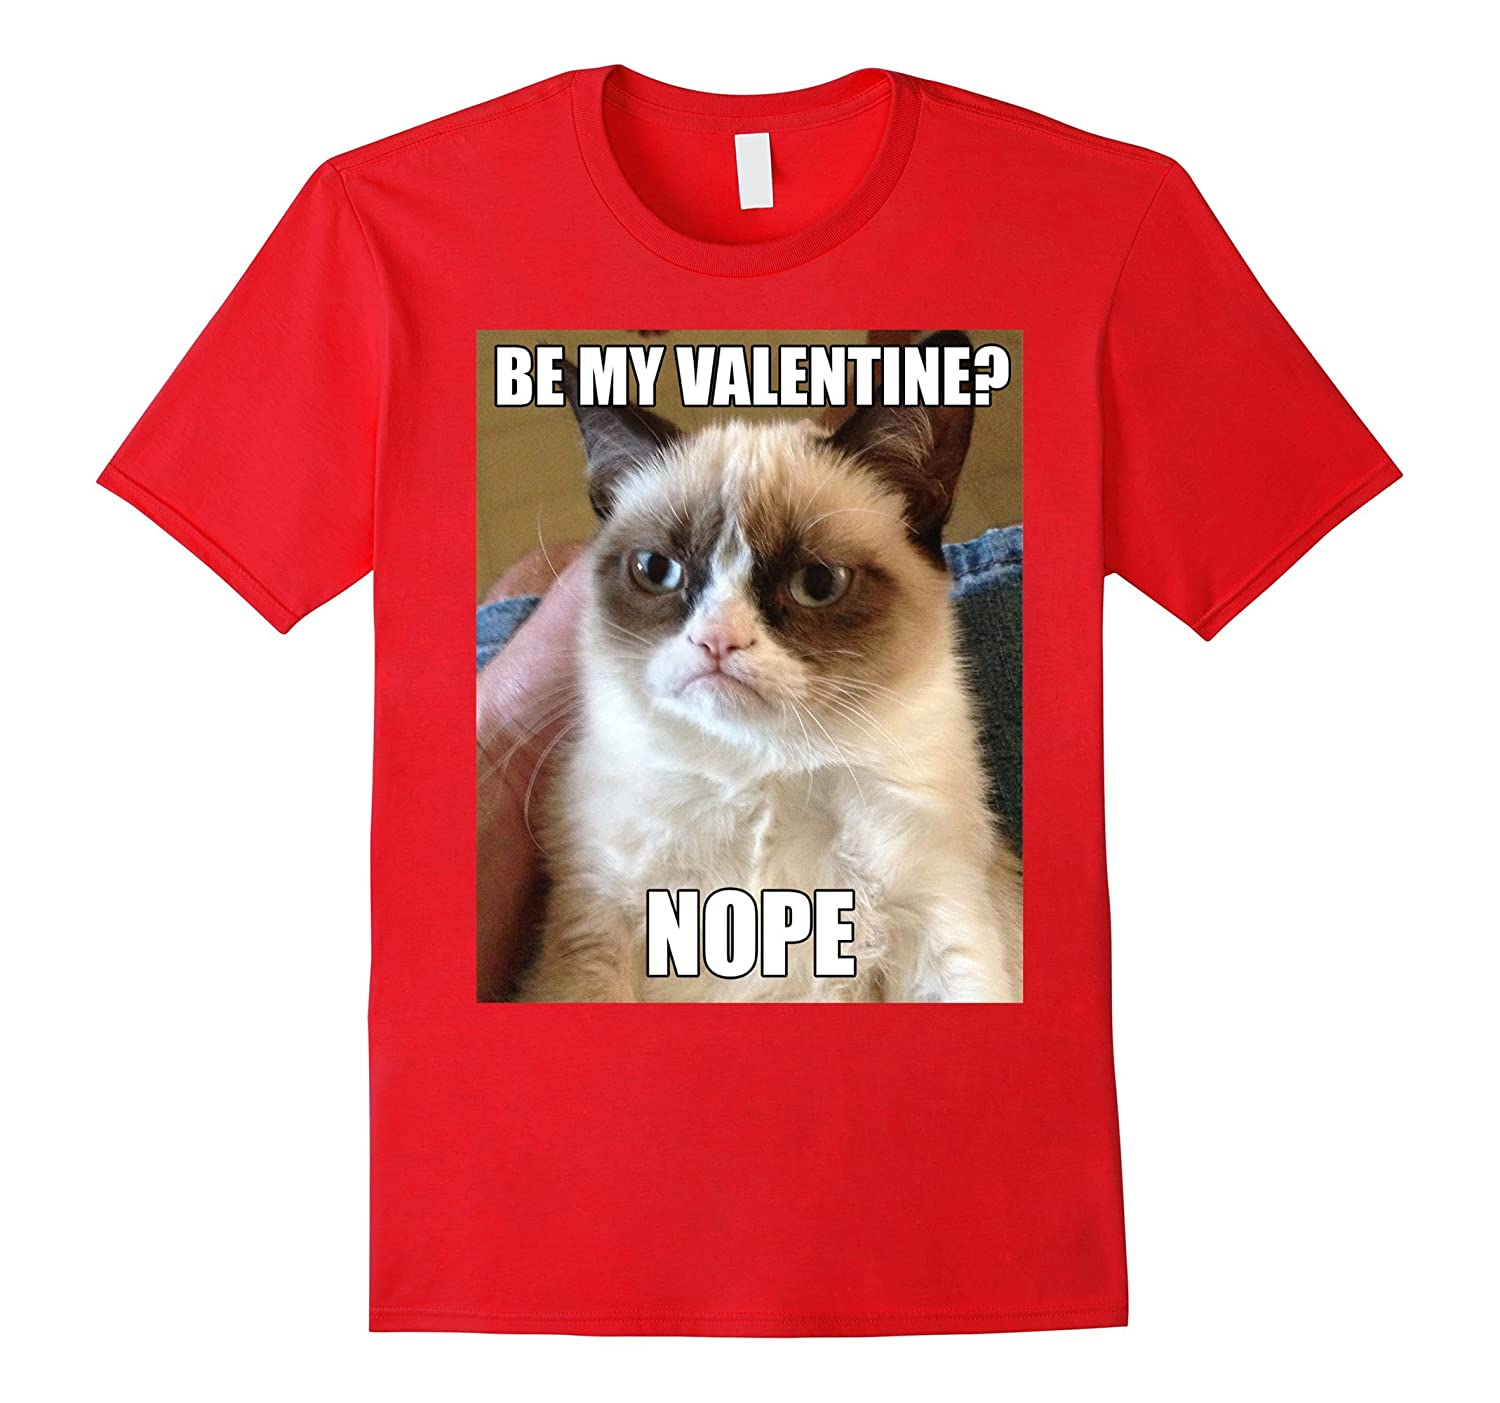 Grumpy Cat Nope Valentine S Day Meme Photo Graphic T Shirt Rt